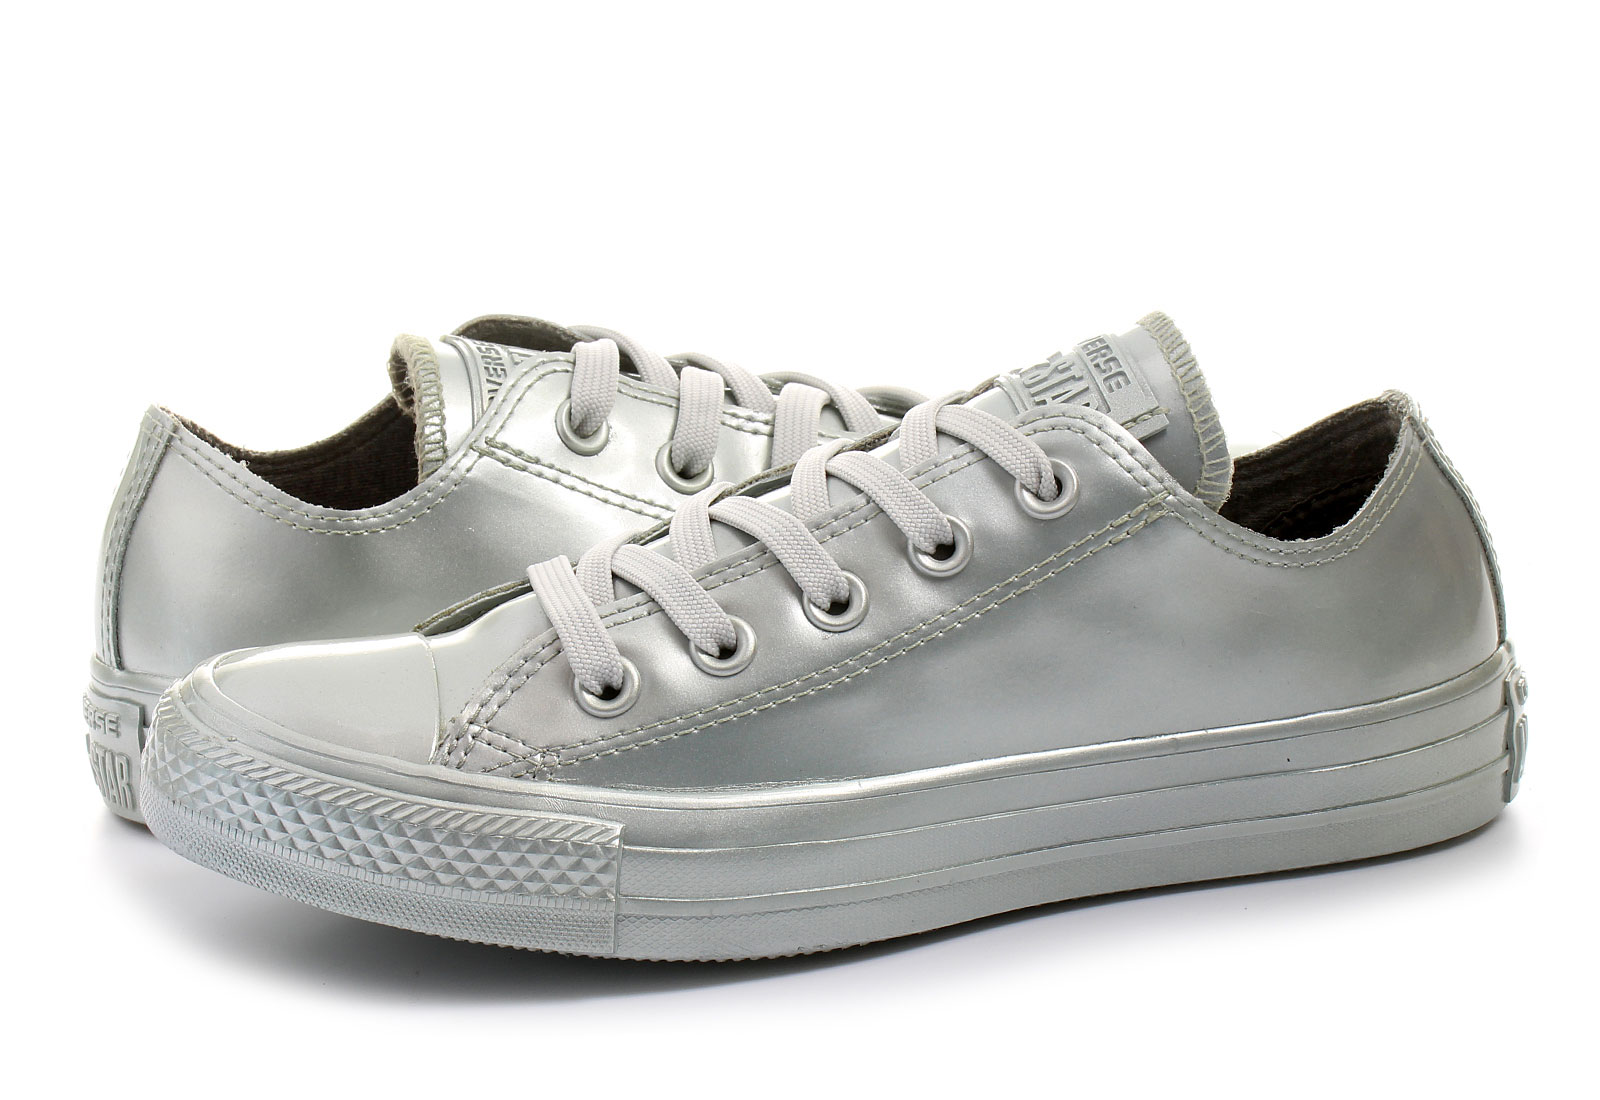 ba627c42c70 Converse Sneakers - Chuck Taylor All Star Metallic Rubber - 553272C ...